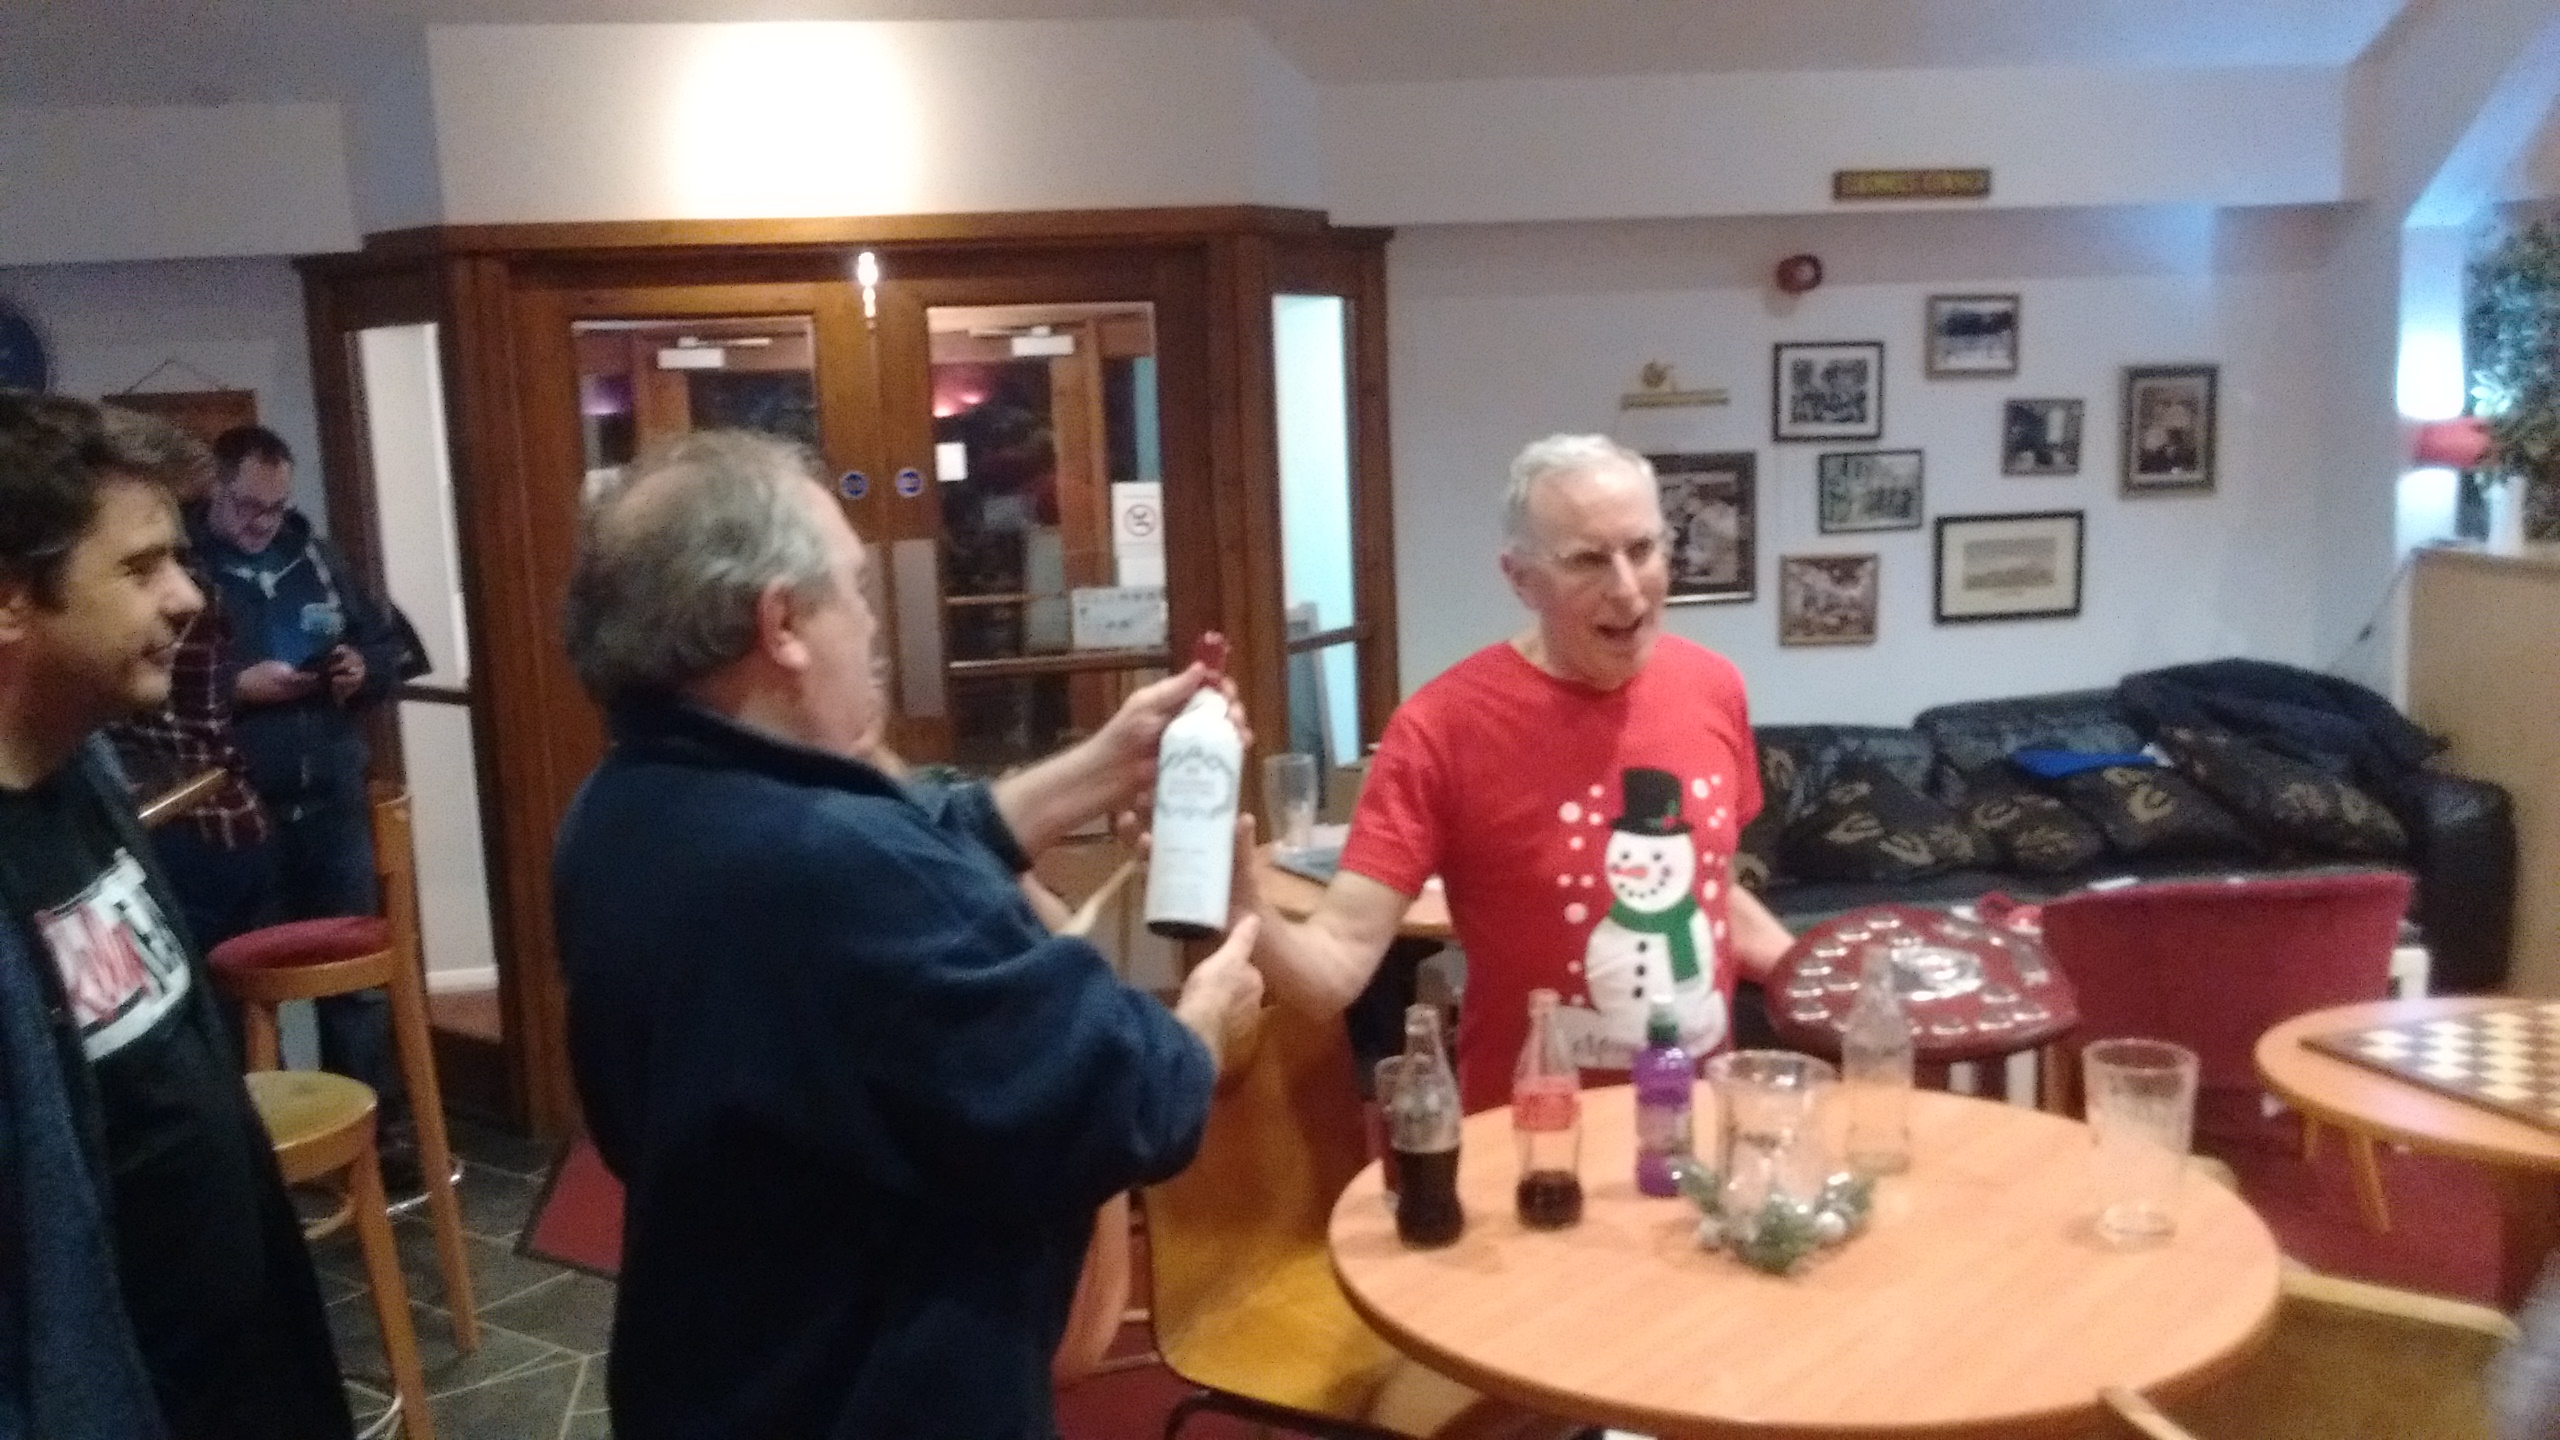 Ken receives the coveted wooden spoon (and a bottle of wine)